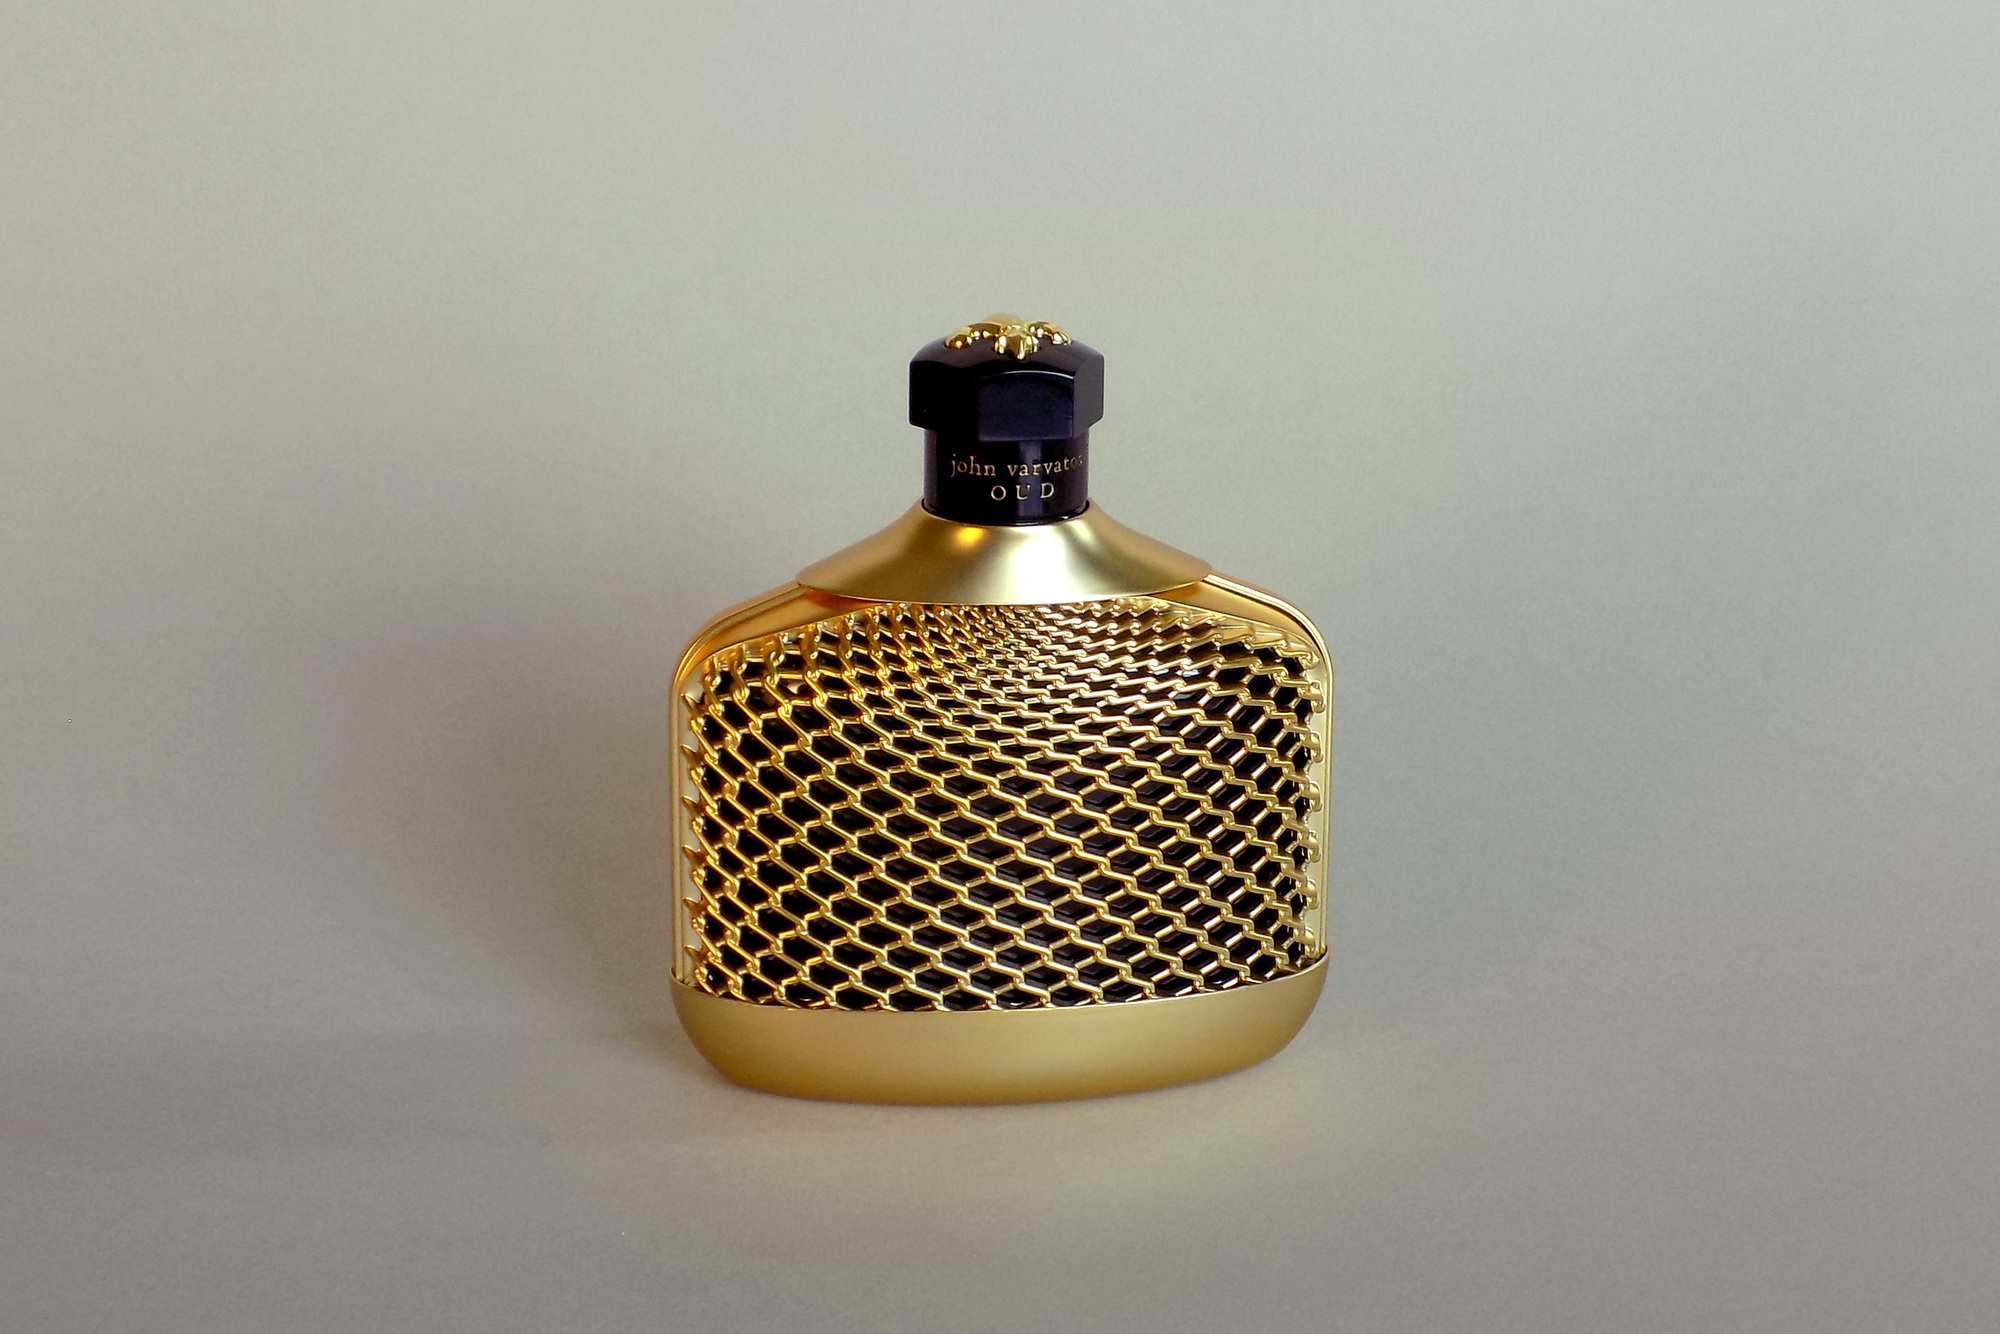 JV Oud bottle design